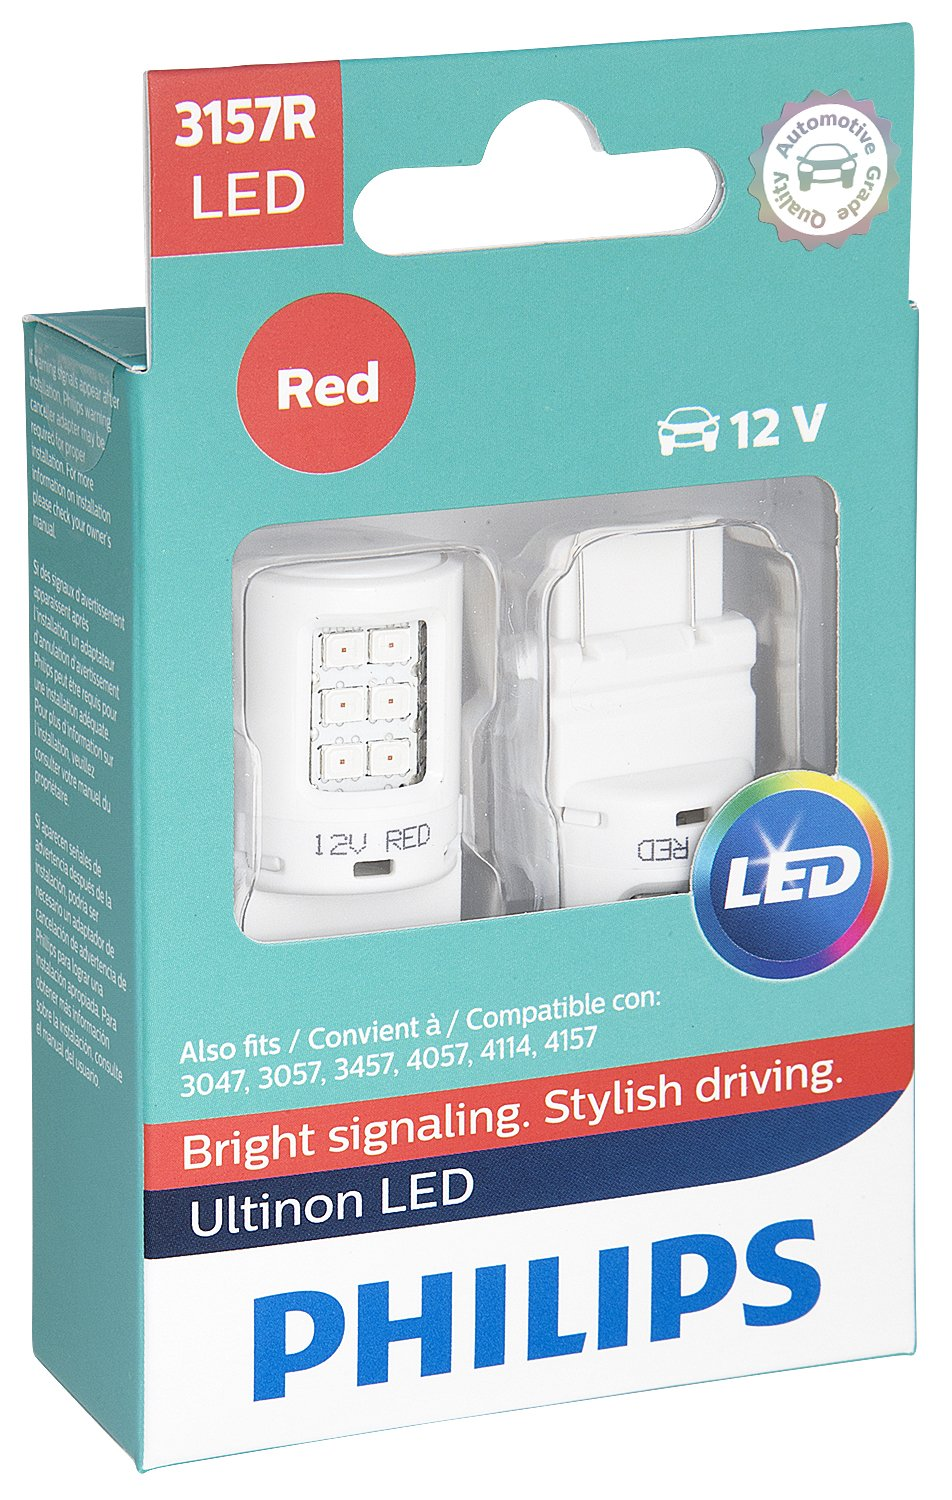 Philips 3157 Ultinon LED Bulb (Red), 2 Pack by Philips